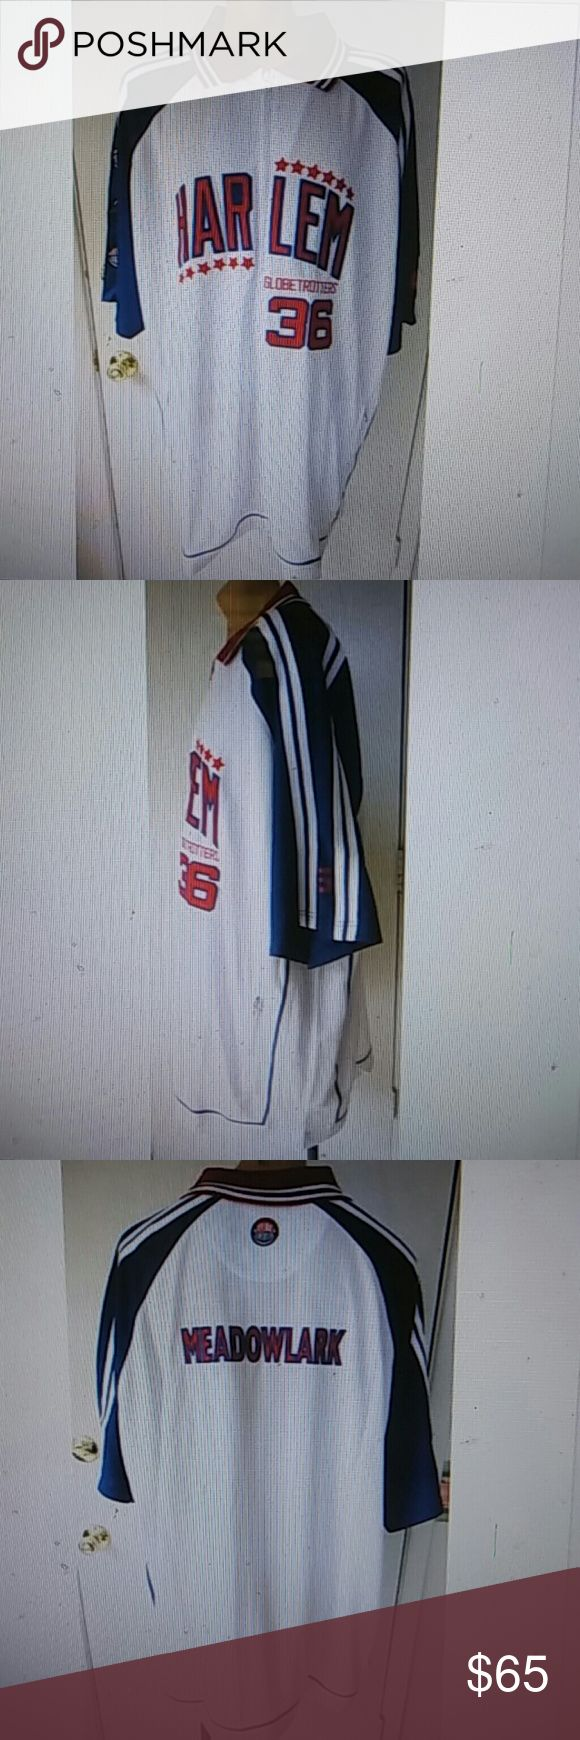 """FUBU PLATINUM -HARLEM GLOBETROTTERS Jacket 4X This listing is for a FUBU PLATINUM men's HARLEM GLOBETROTTERS """"MEADOWLARK LEMON"""" Jersey Jacket. Made of 100% Polyester fabric. Front full zip closure, collar, 2 hip pockets with zip closures, and short sleeves. It is NEW WITHOUT TAGS and is in MINT wearable condition.   Size 4X. Measurements are Length 37"""", Chest 62"""", Waist 62"""", Hip 62"""", Shoulders 29"""", and Short Sleeves 11"""". FUBU Platinum Jackets & Coats Performance Jackets"""